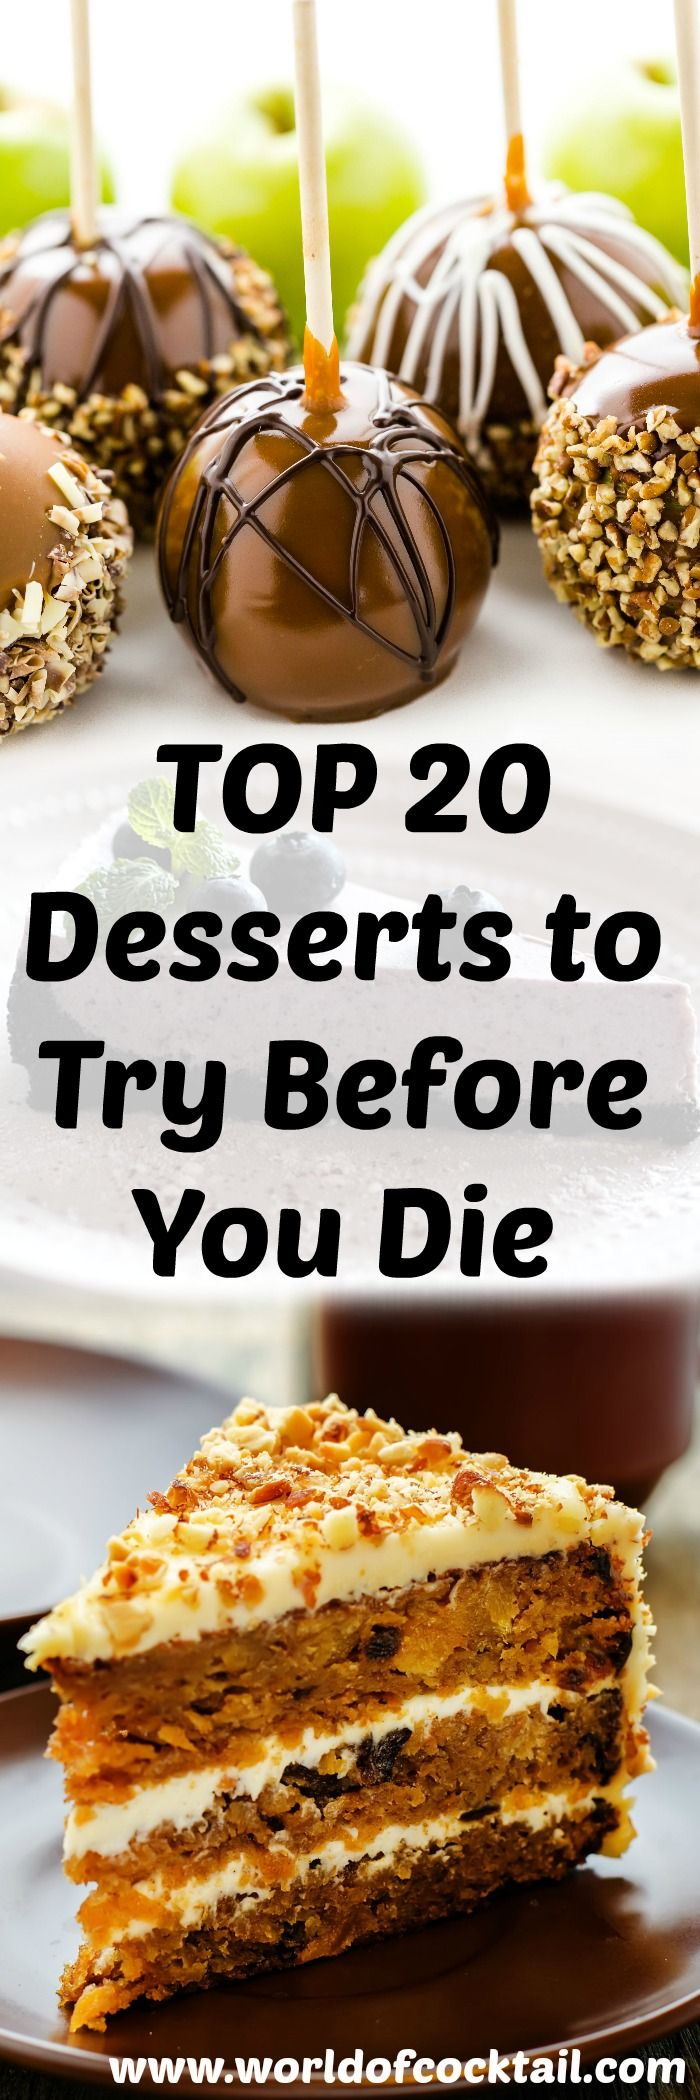 20 Desserts to Try Before You Die PIN